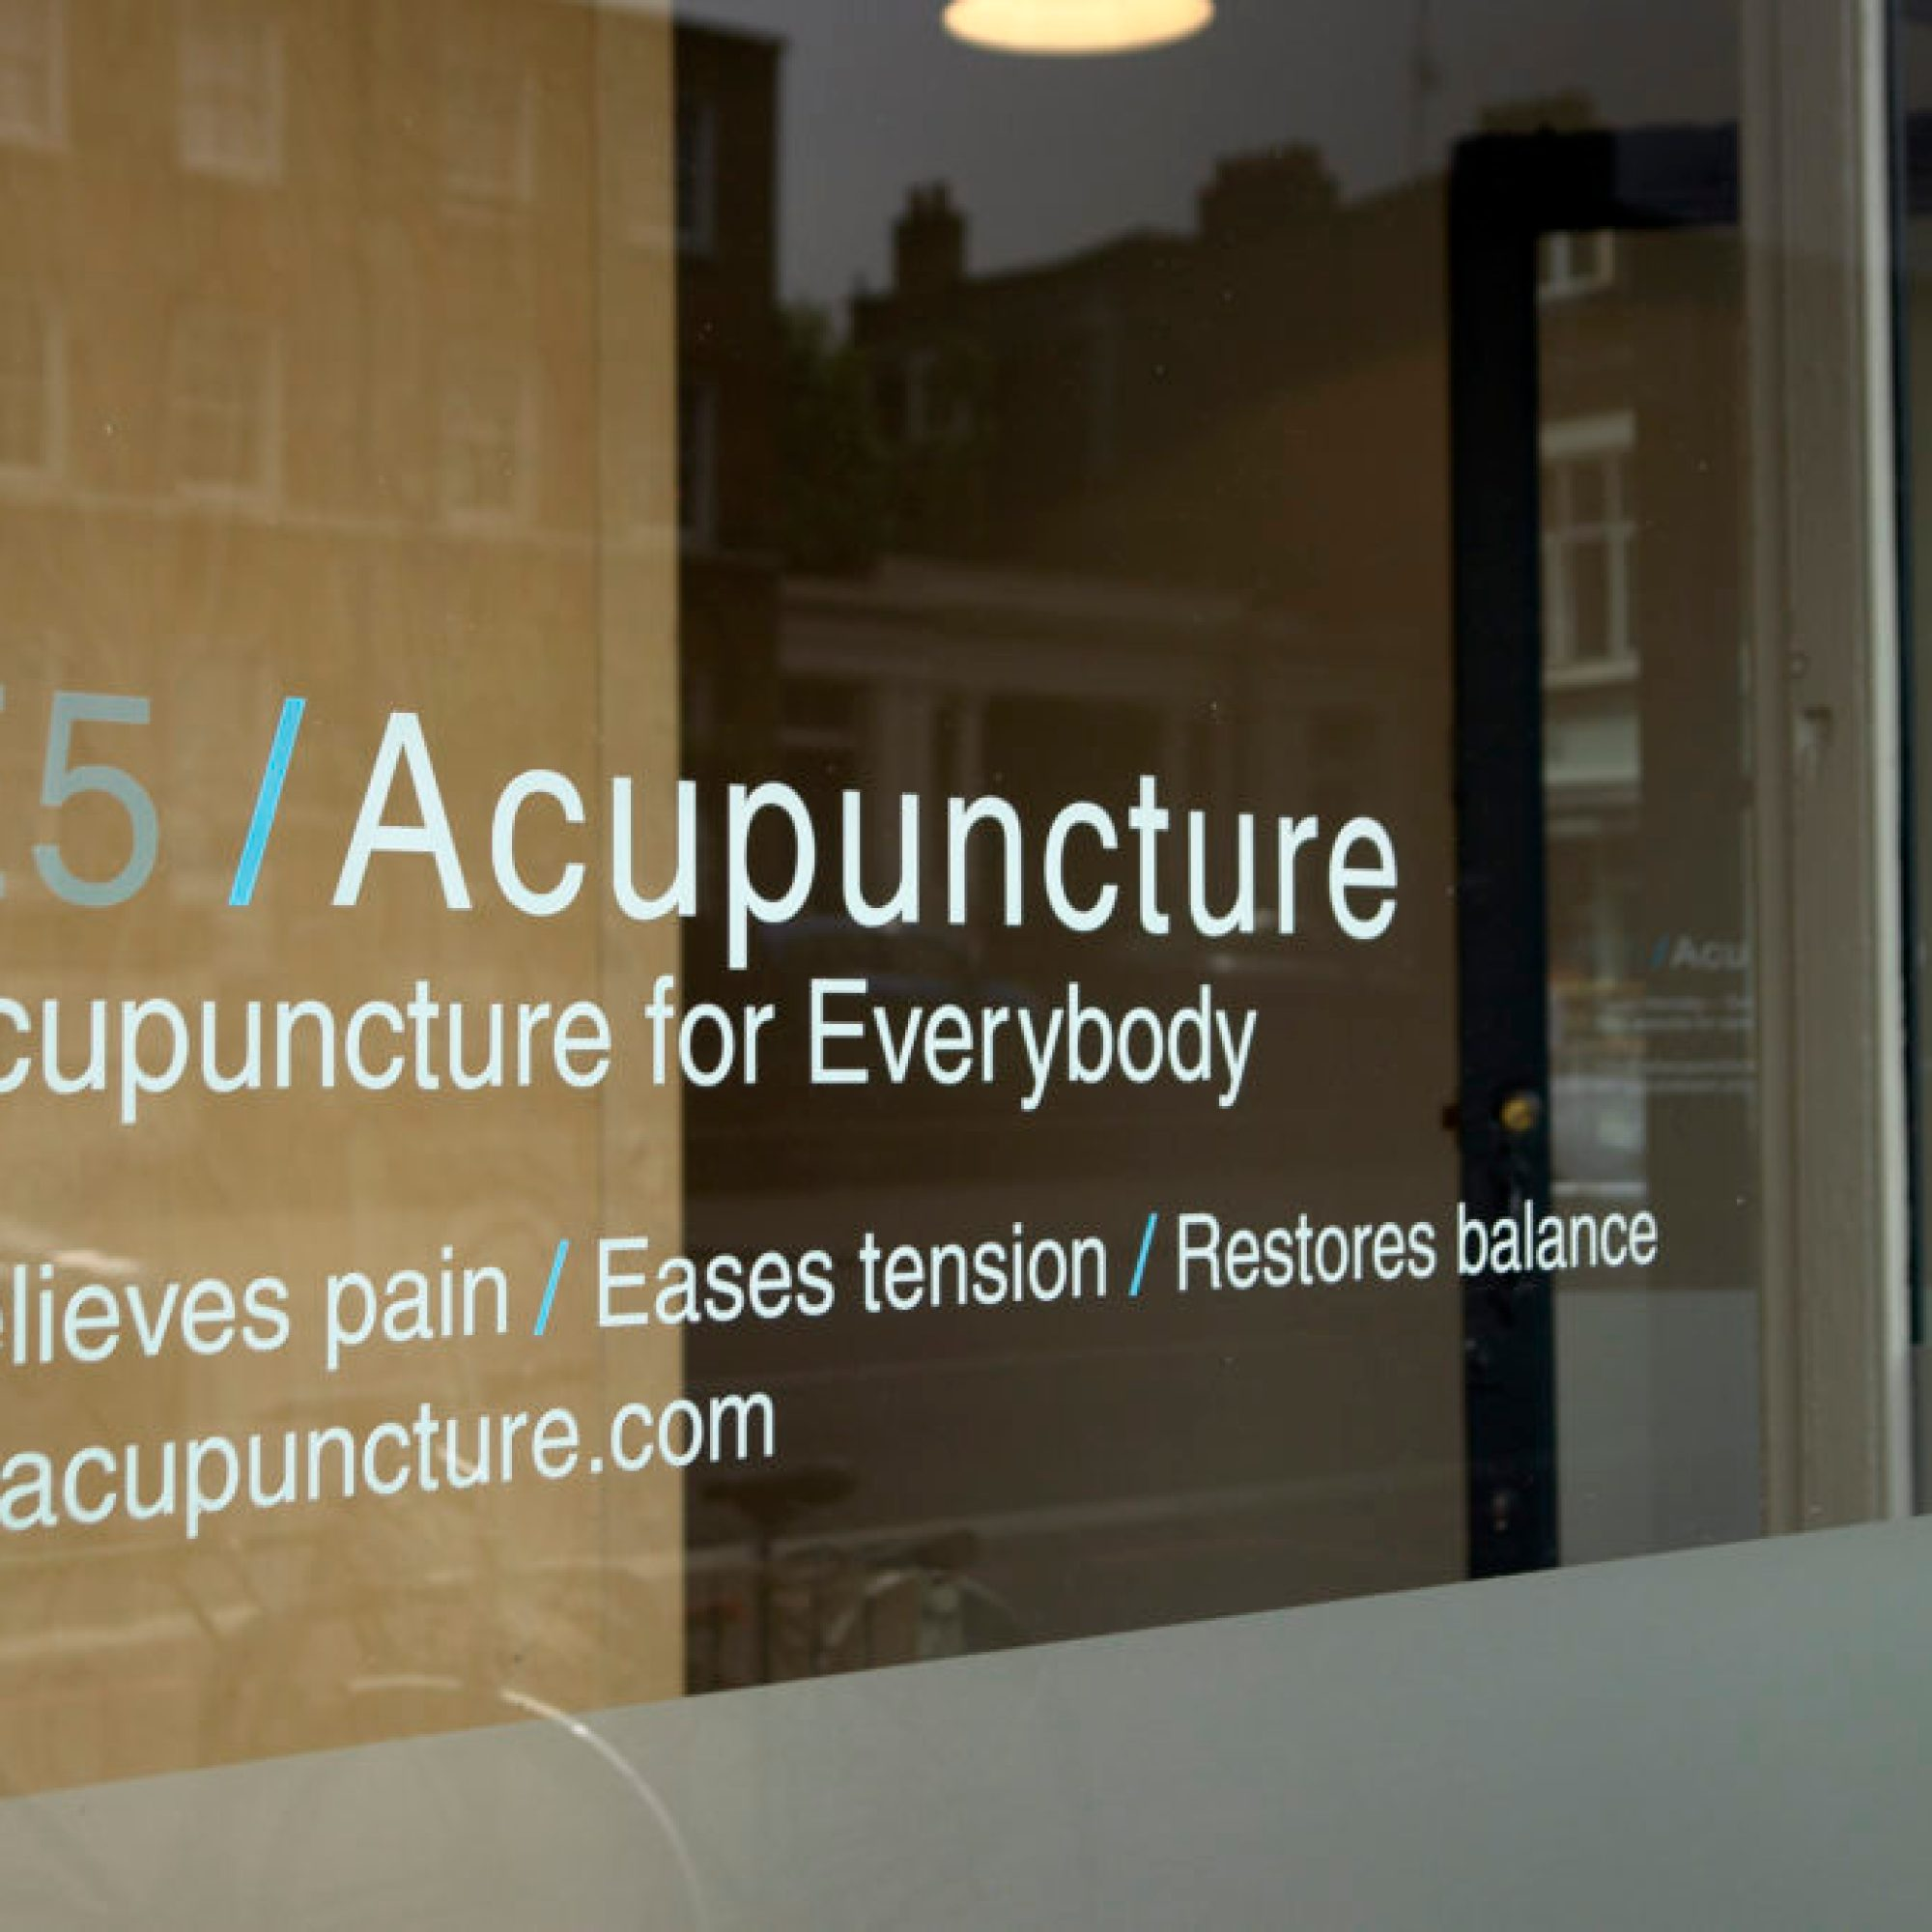 E5 Acupuncture exterior